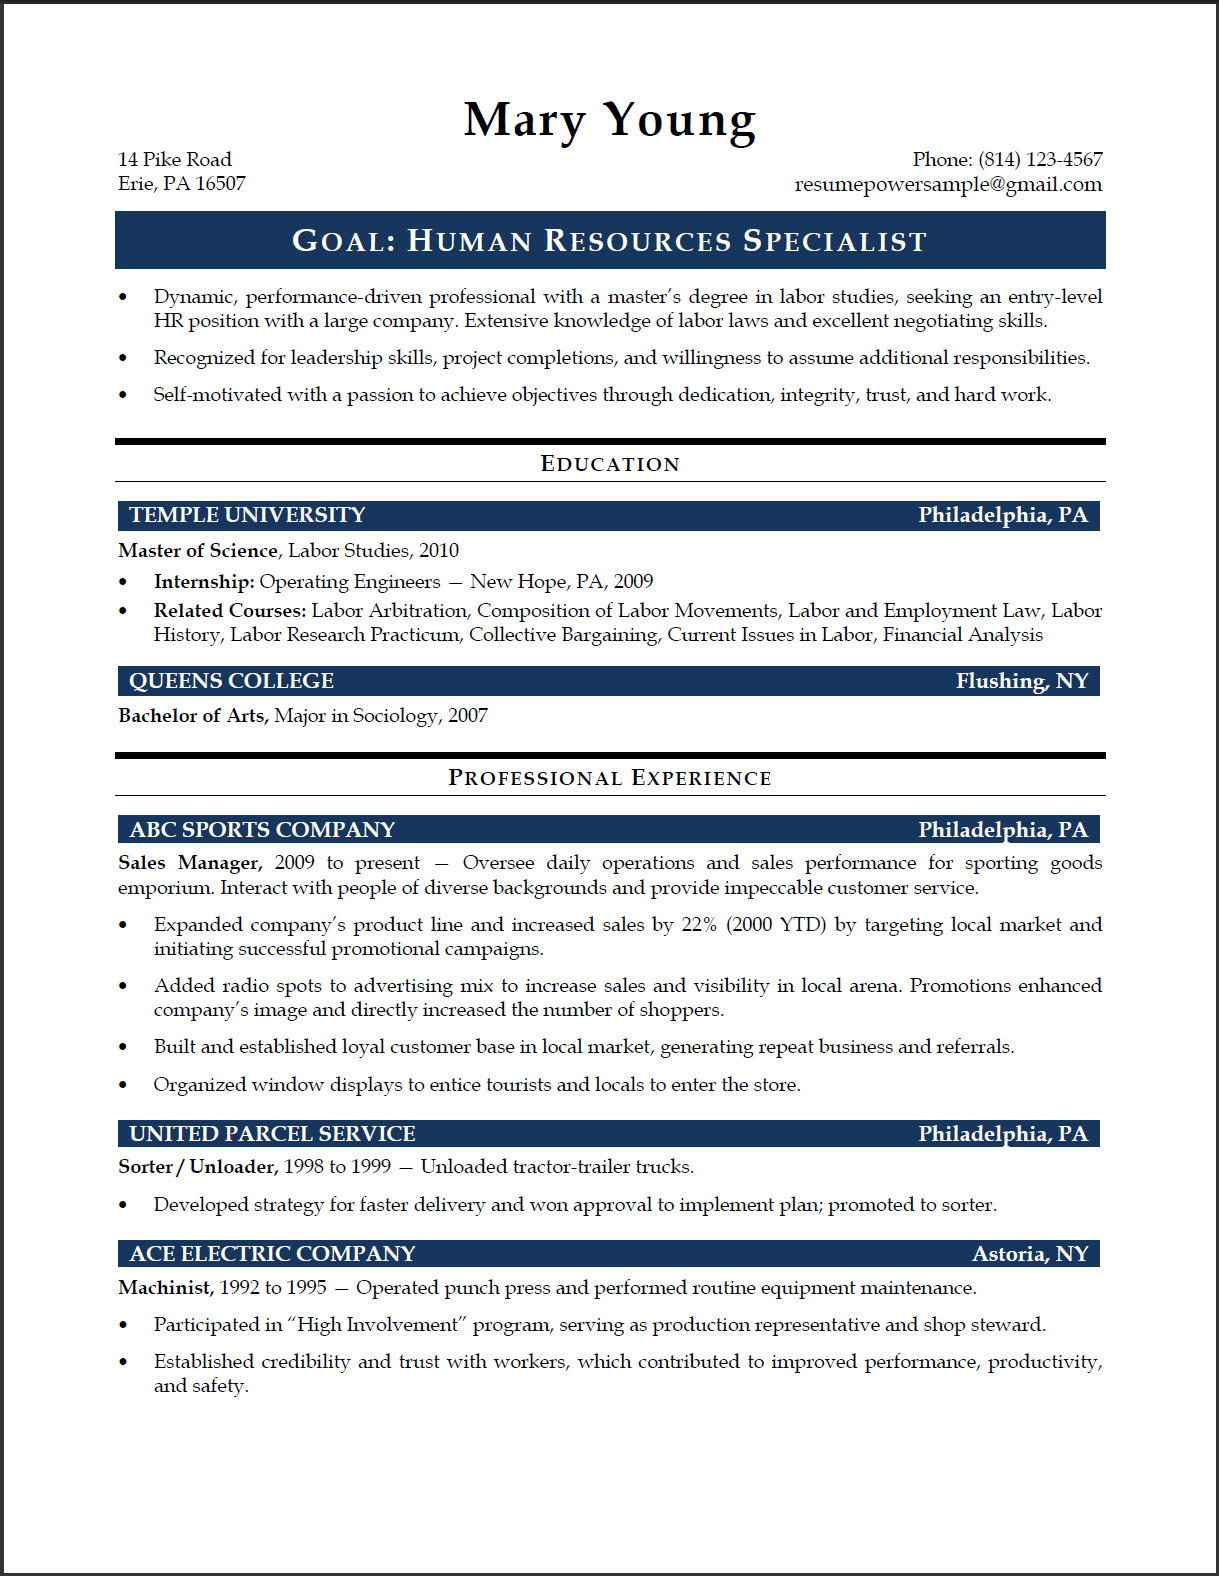 Image Researcher Sample Resume Health and Wellness Resume